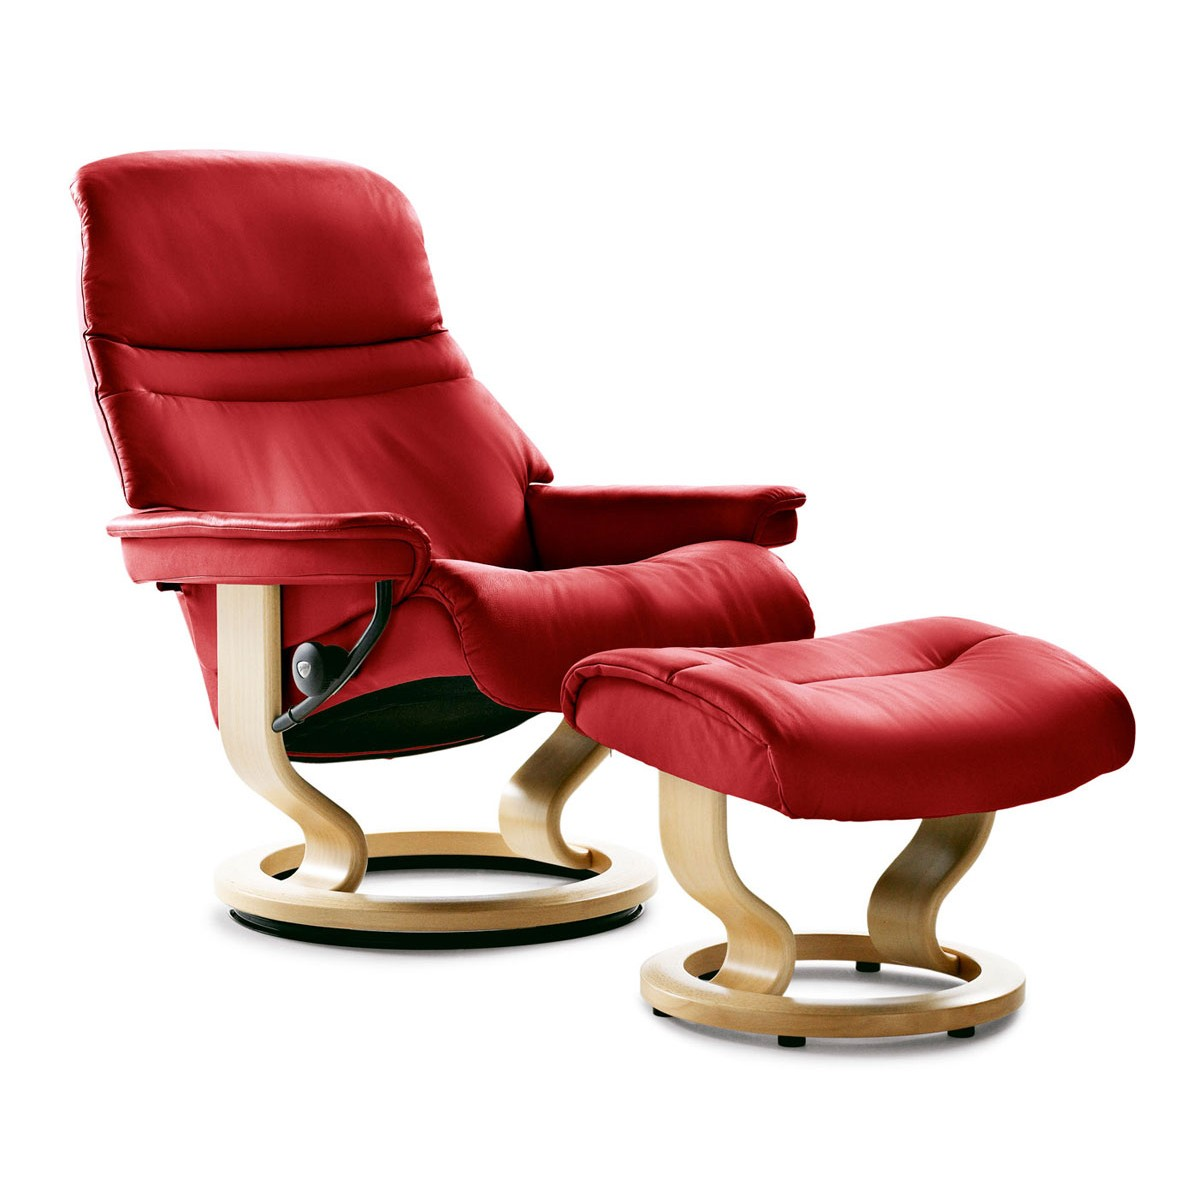 stressless chair repair parts acrylic dining chairs nz leather recliner and ottoman ekornes